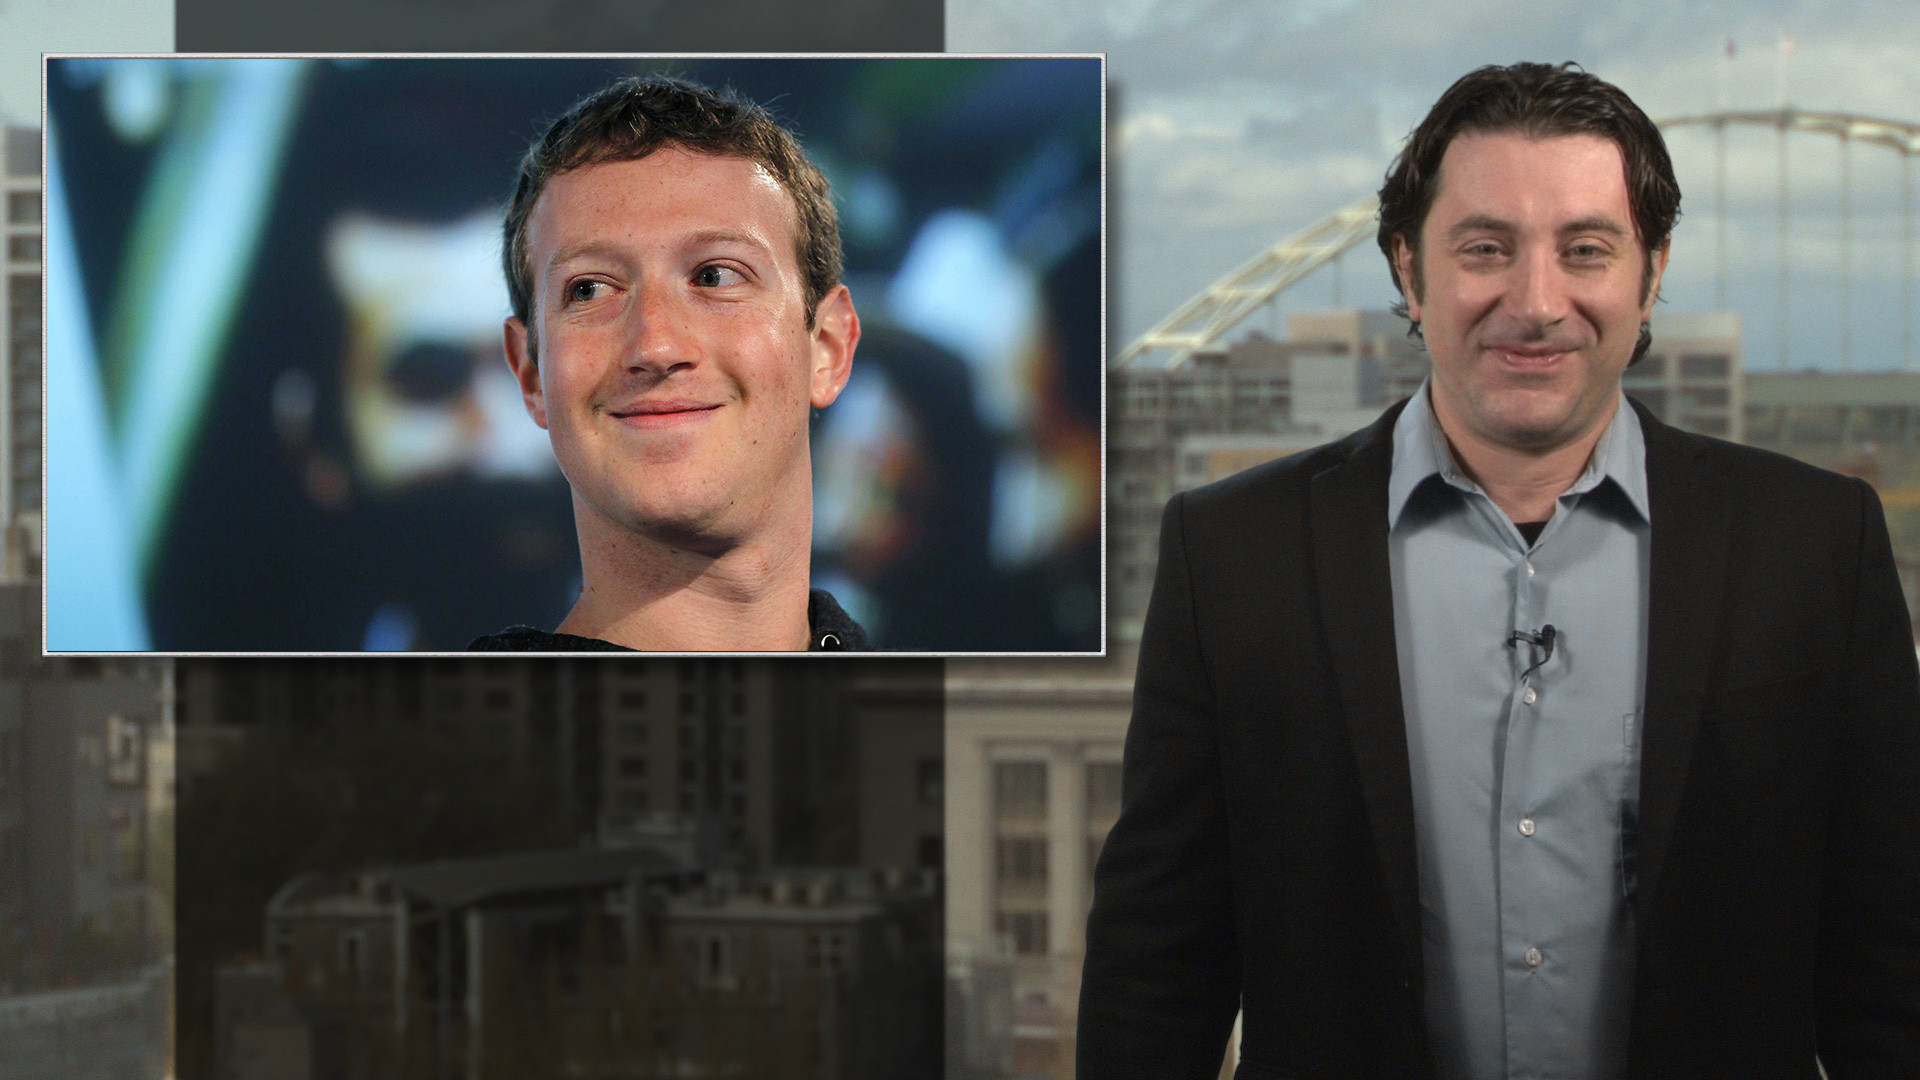 Zuck's security team costs $5M a year, VW used PowerPoint to cheat